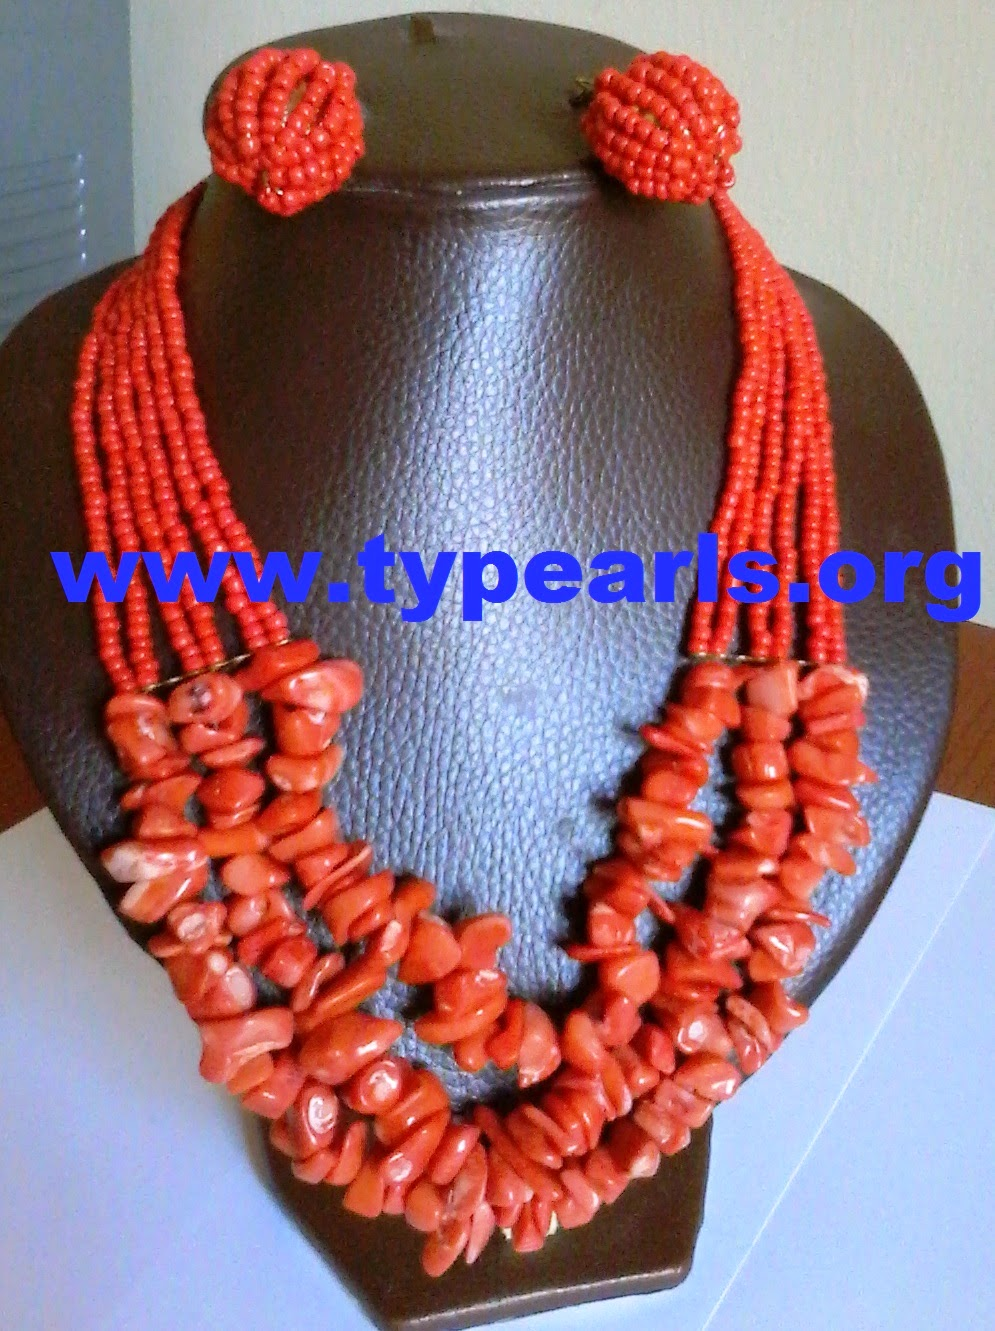 coral beads training